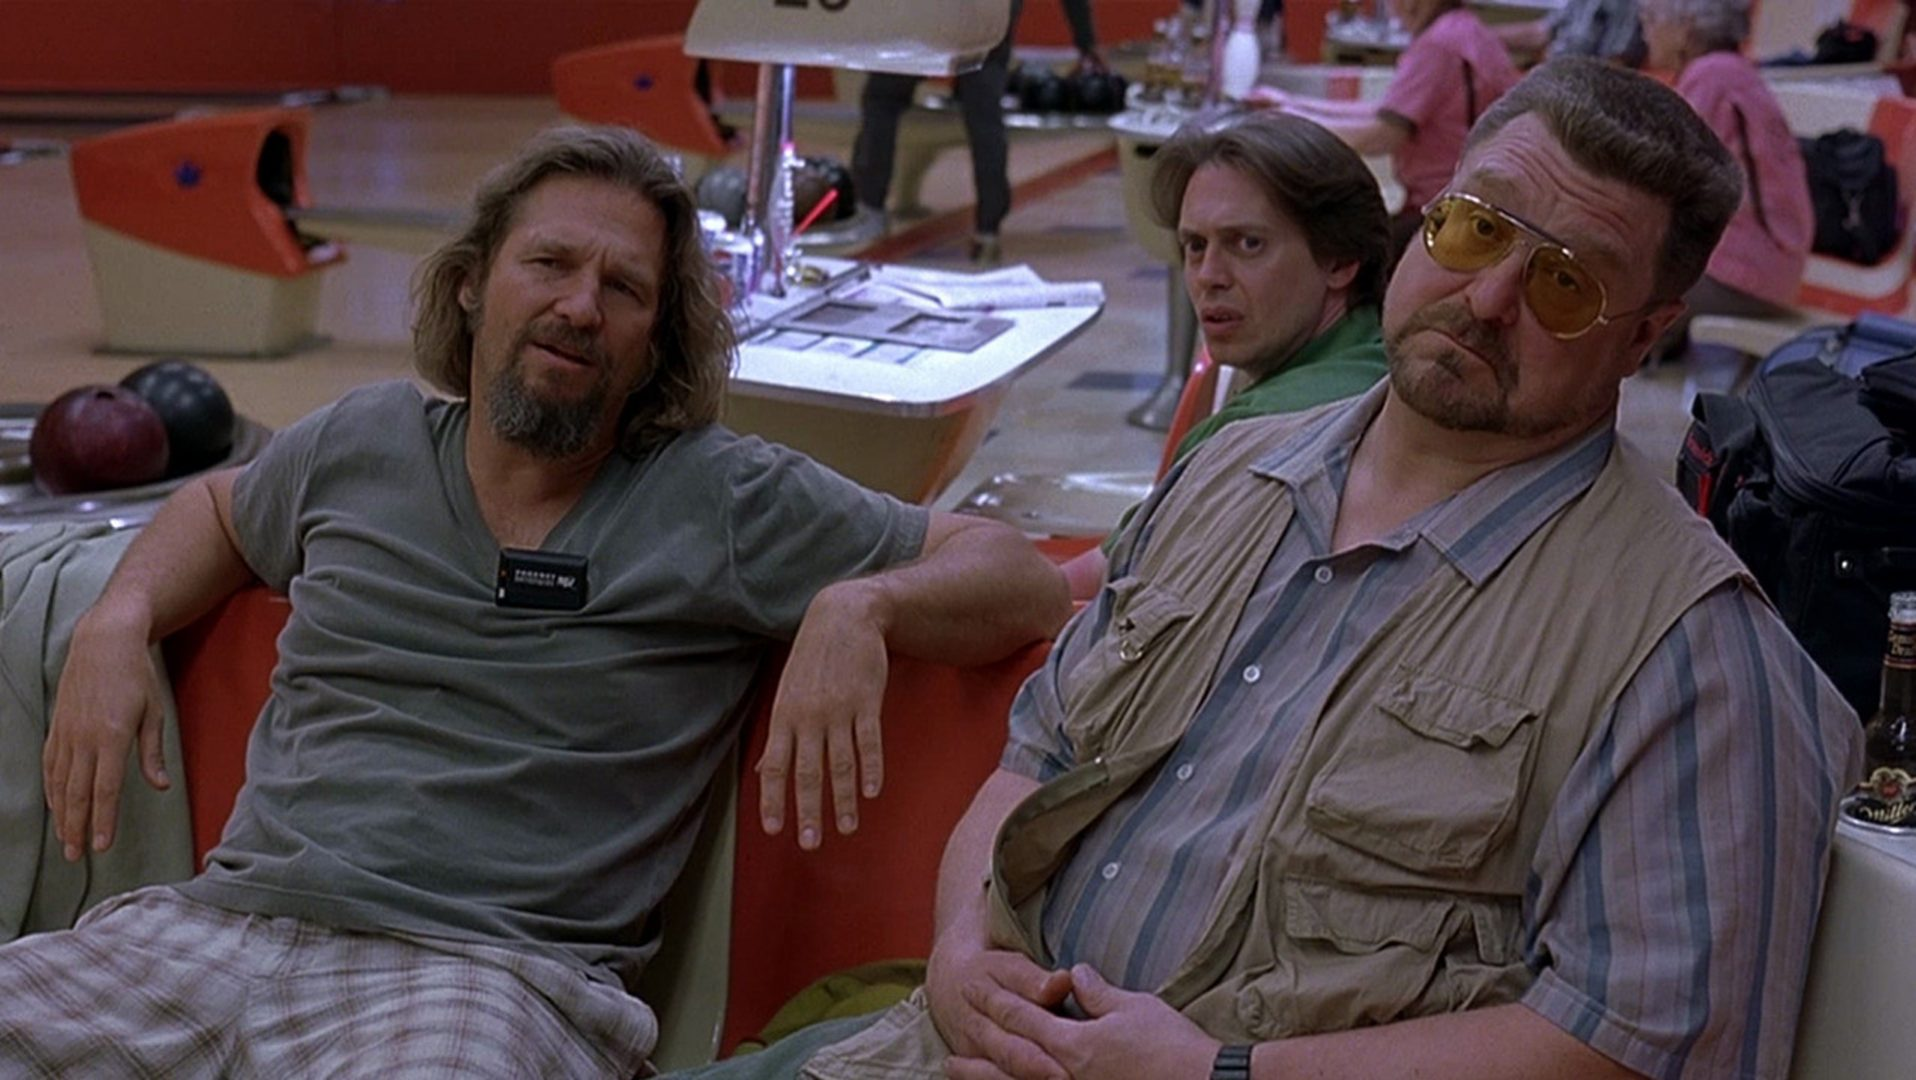 Jeff Bridges and John Goodman in The Big Lebowski.